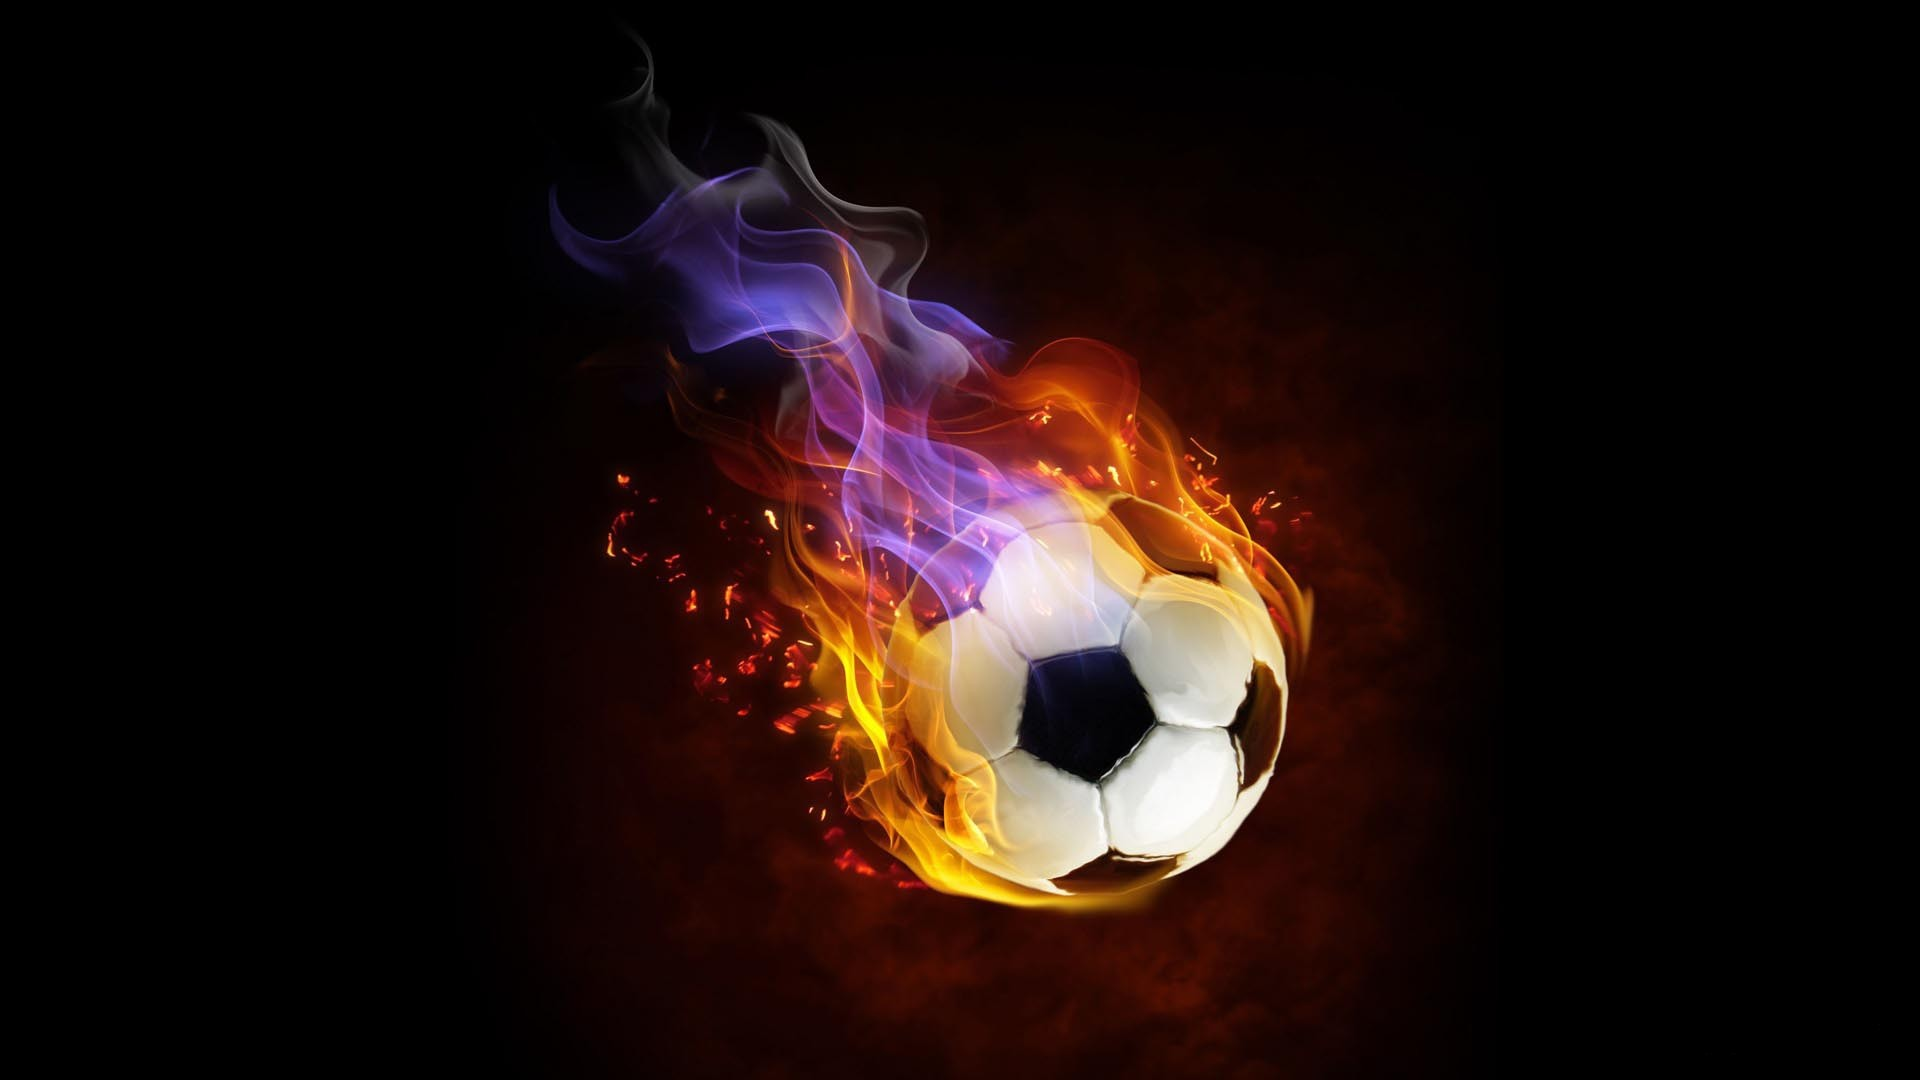 Cool soccer backgrounds 59 images 1920x1080 hd cool soccer wallpaper voltagebd Choice Image